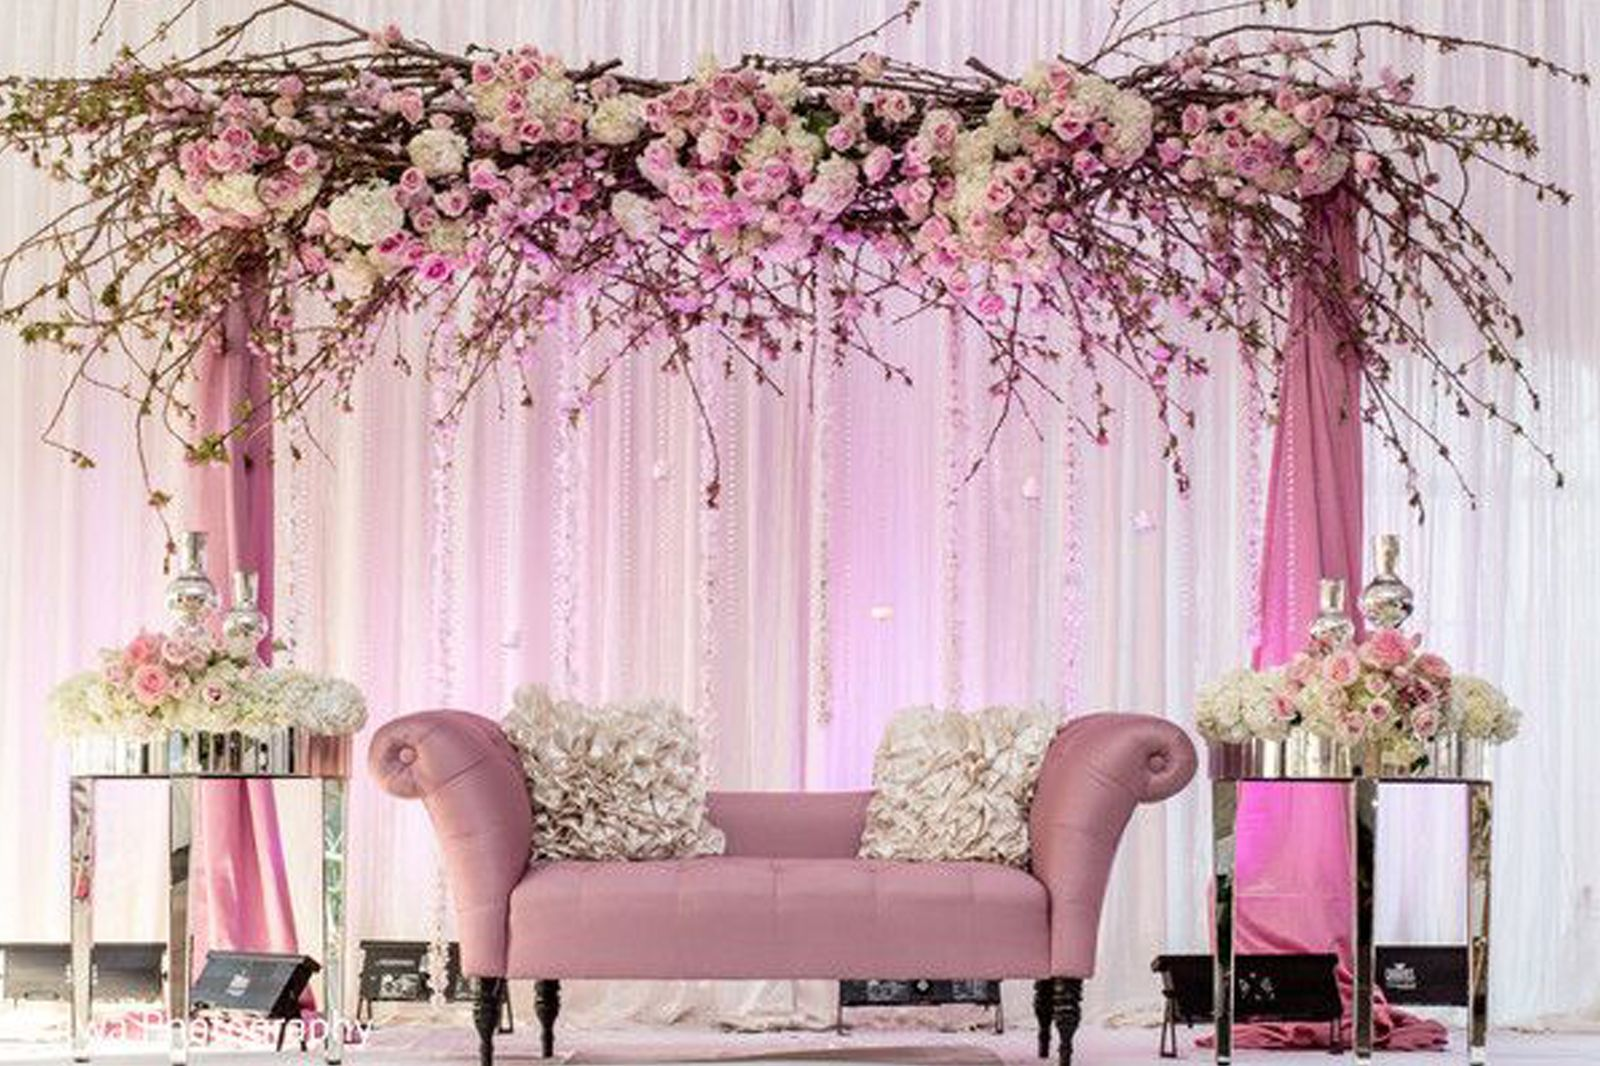 Indian Wedding Decorations: 10 Creative Decor Ideas | Decoration in ...